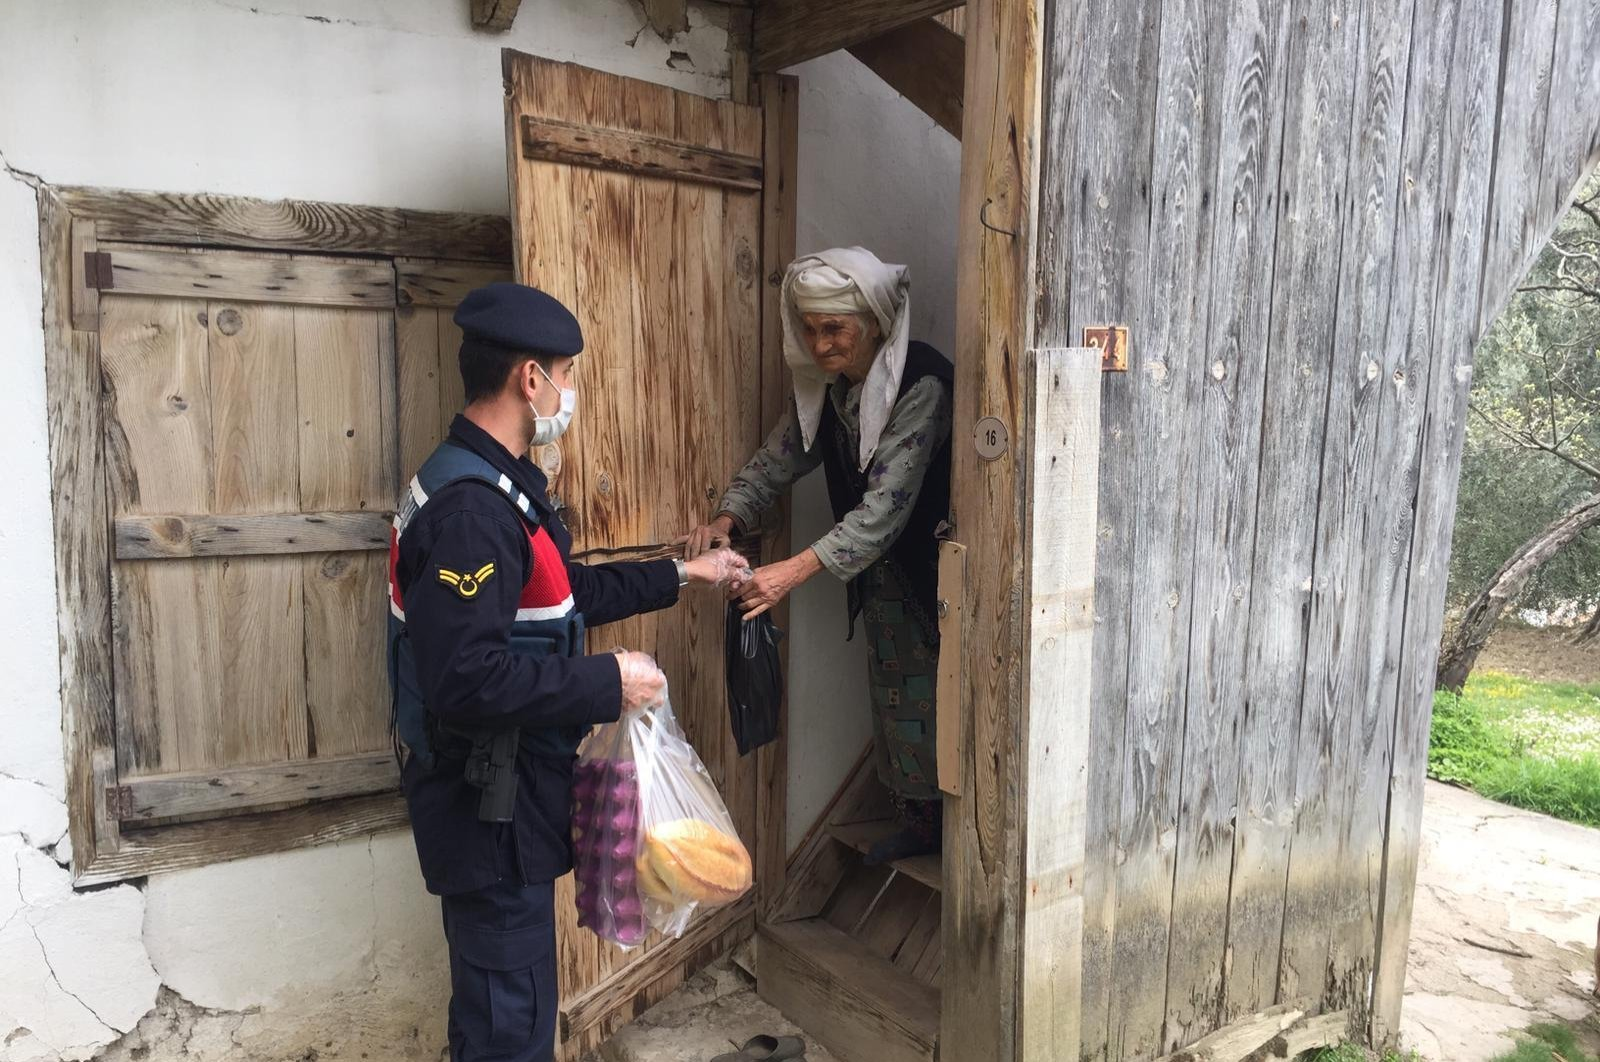 A gendarme officer delivers groceries he bought for an elderly woman, Muğla, Wednesday, March 25, 2020. (AA Photo)